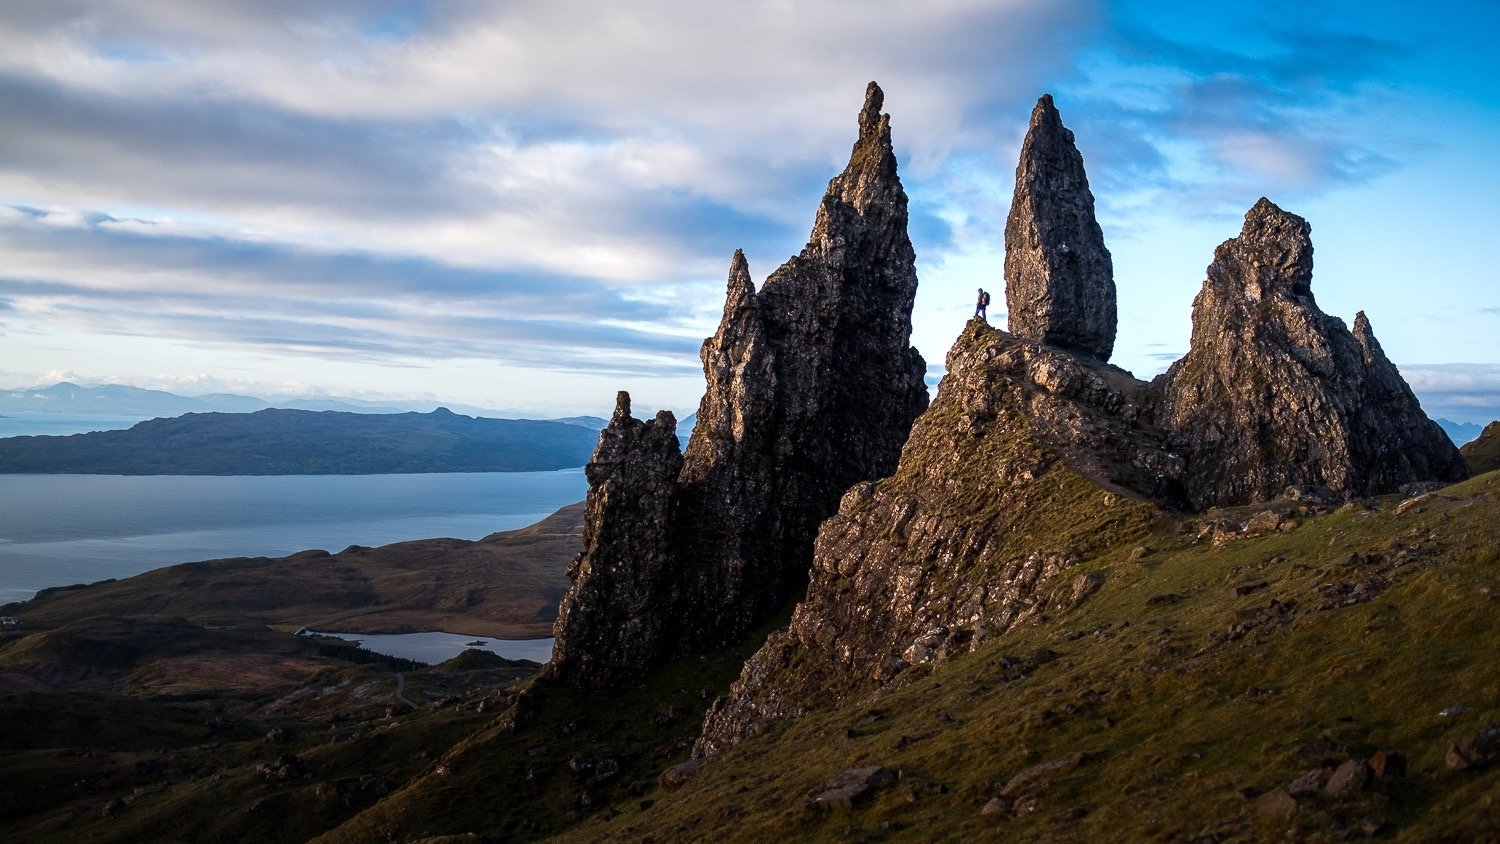 0082-scotland-tamron-le monde de la photo-paysage-20190511072444-compress.jpg